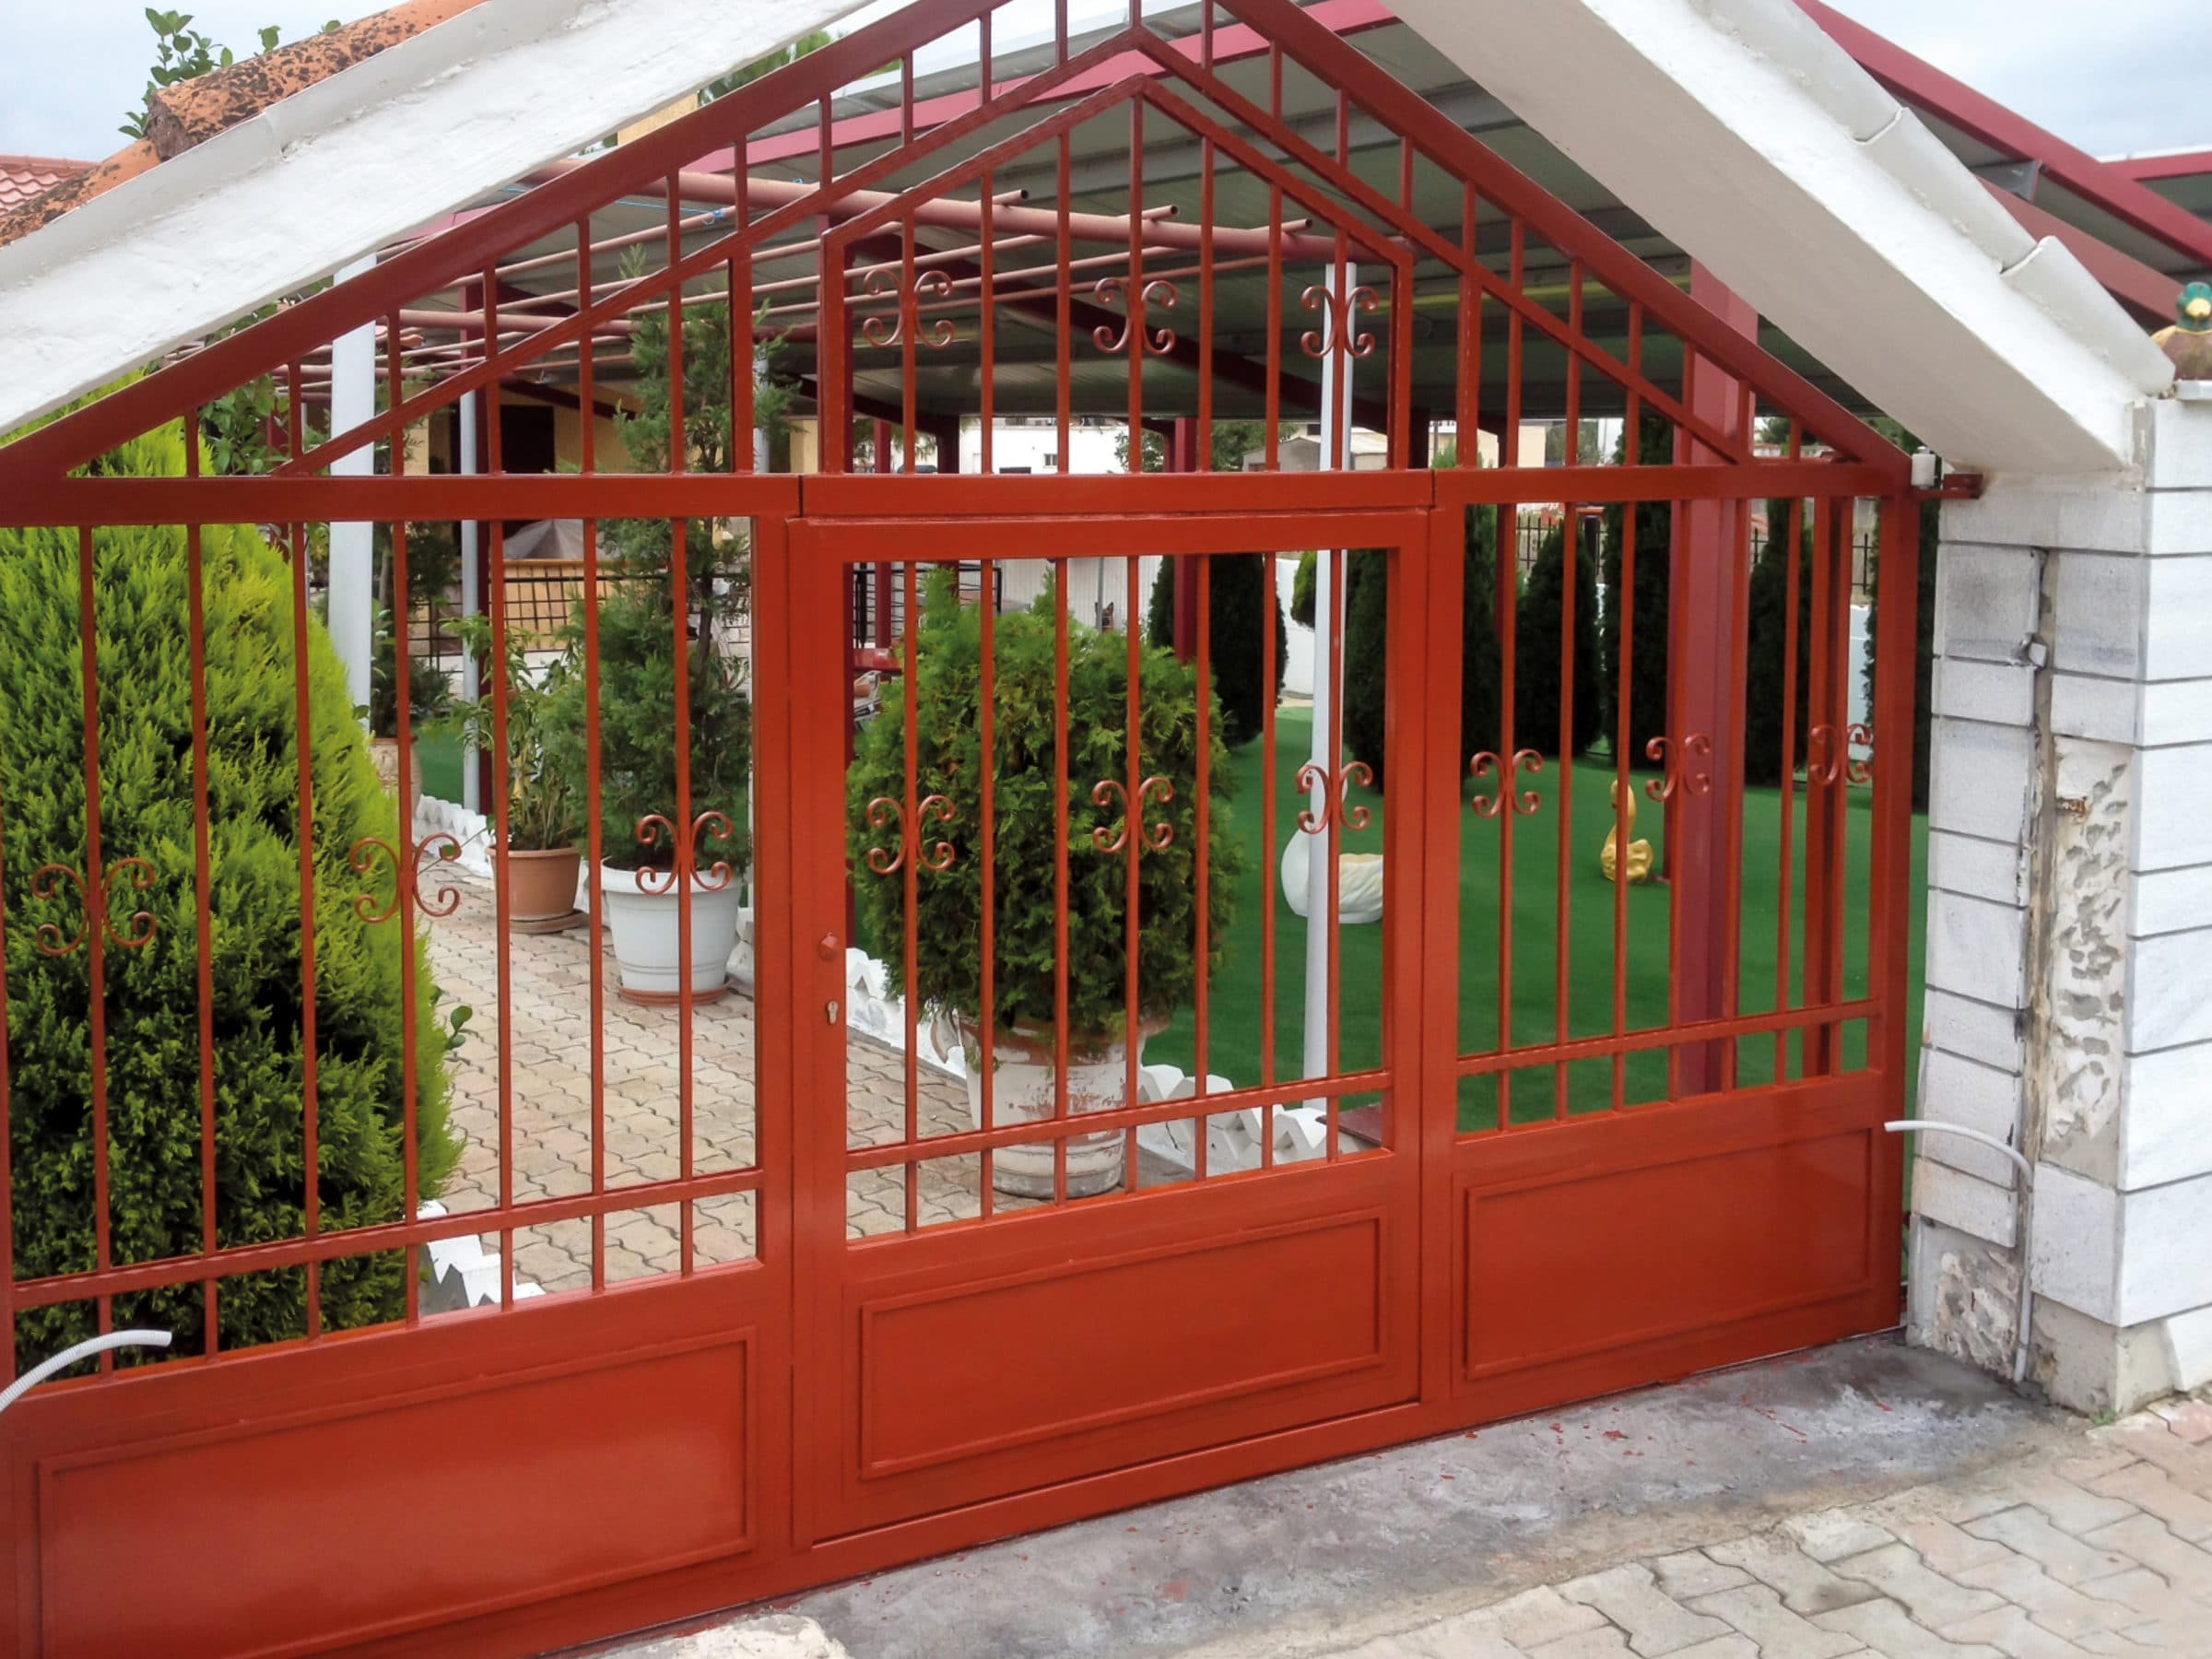 CIP applied to a metal gate